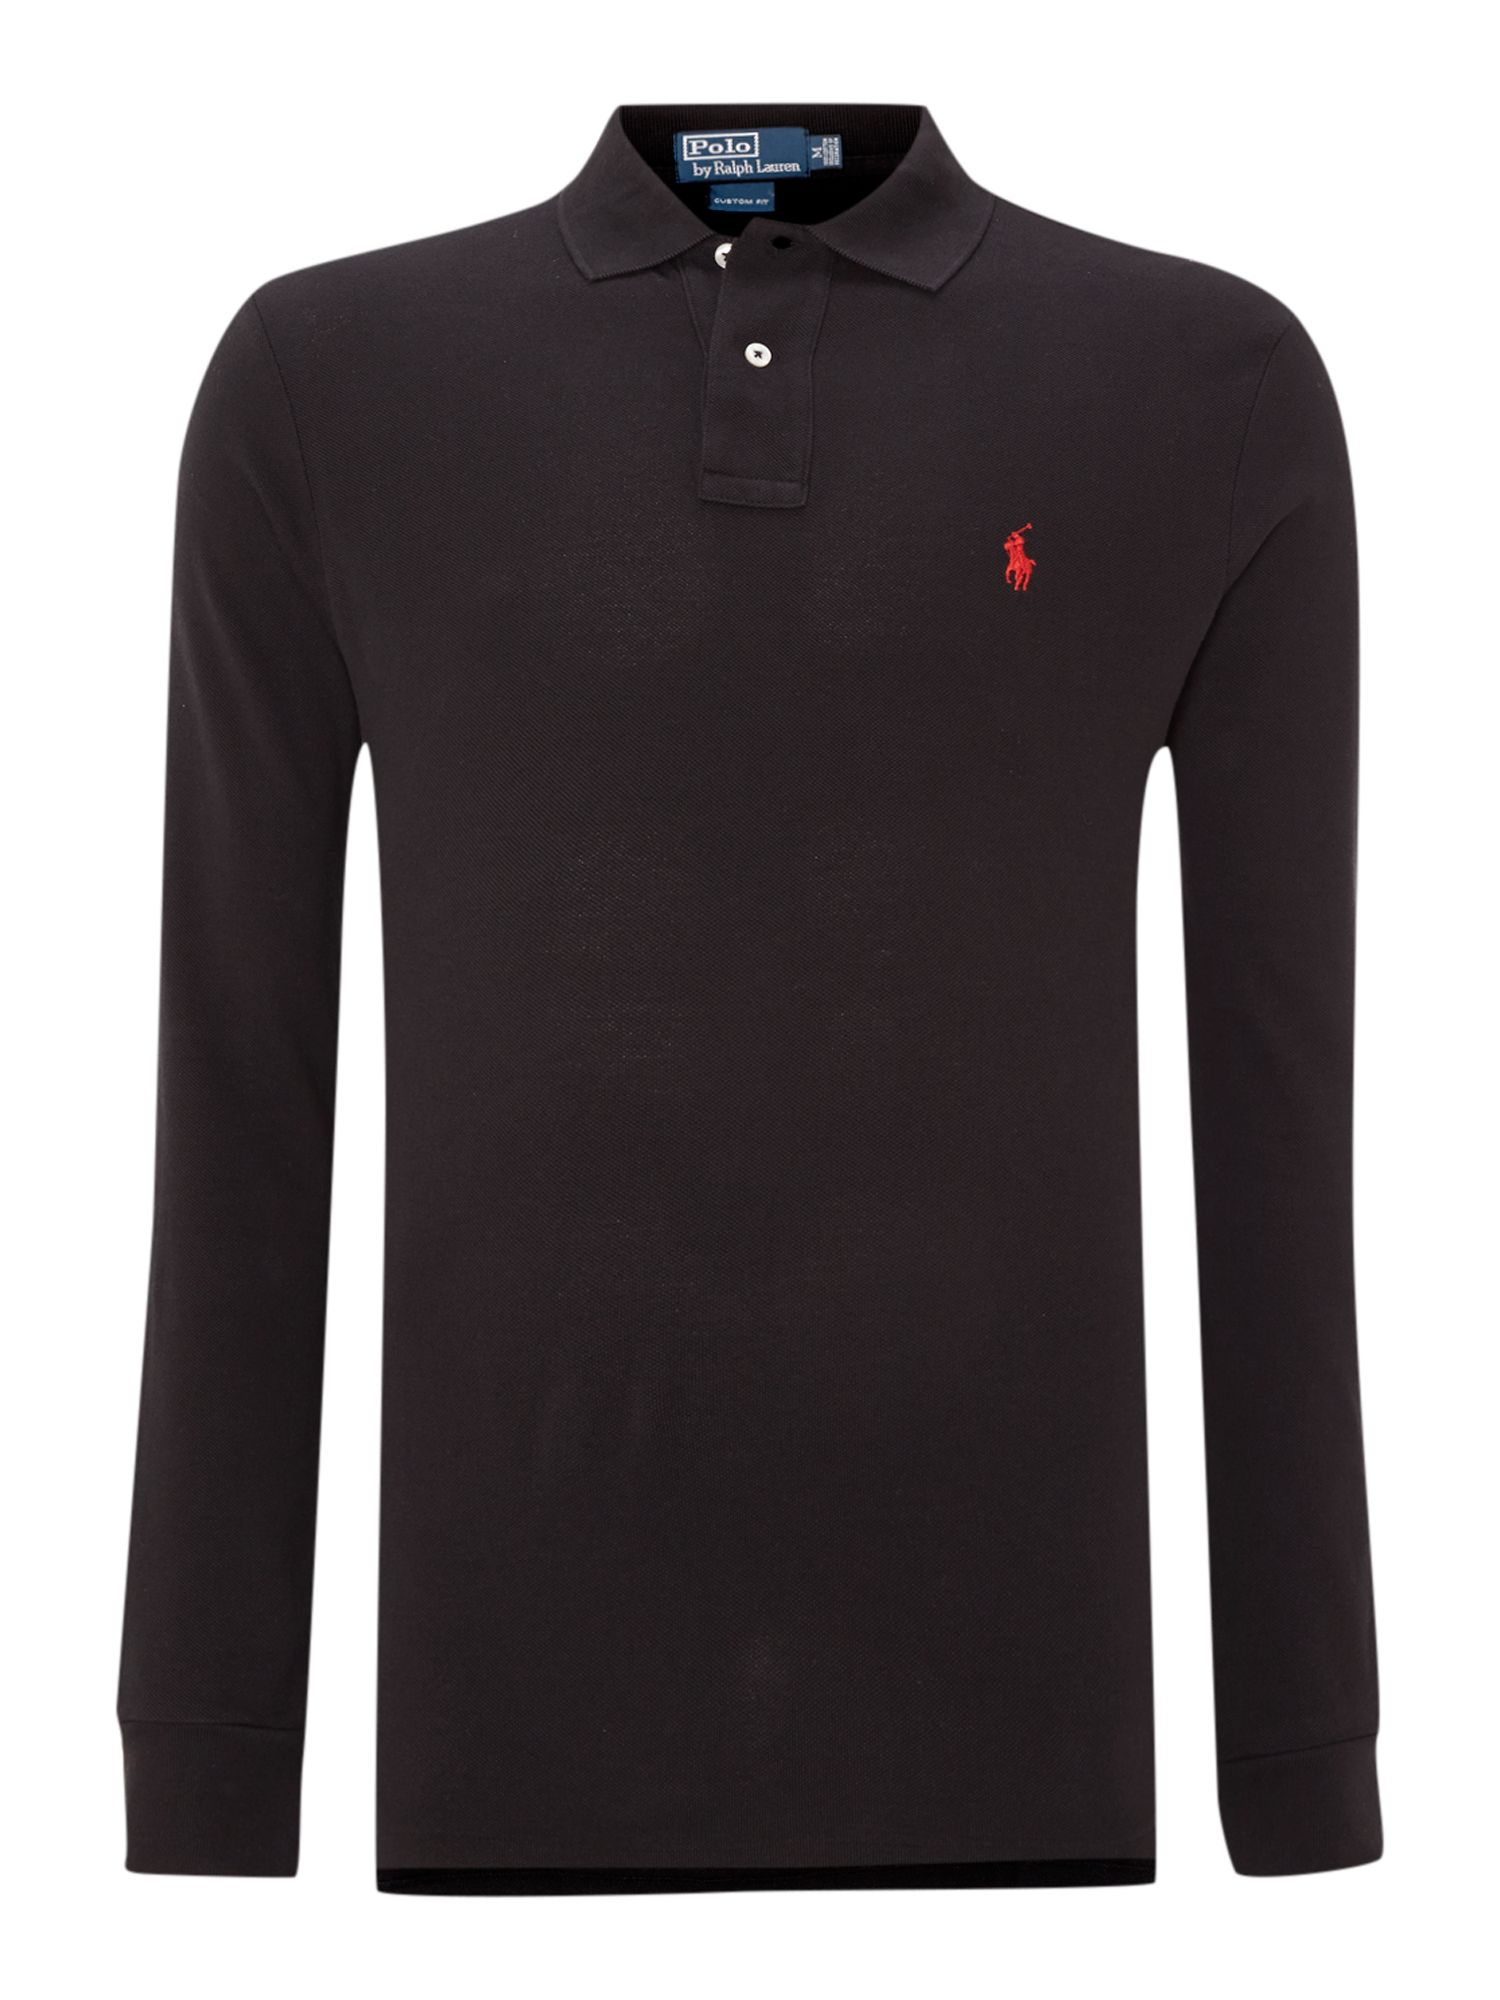 how to wear a black long sleeve t-shirt